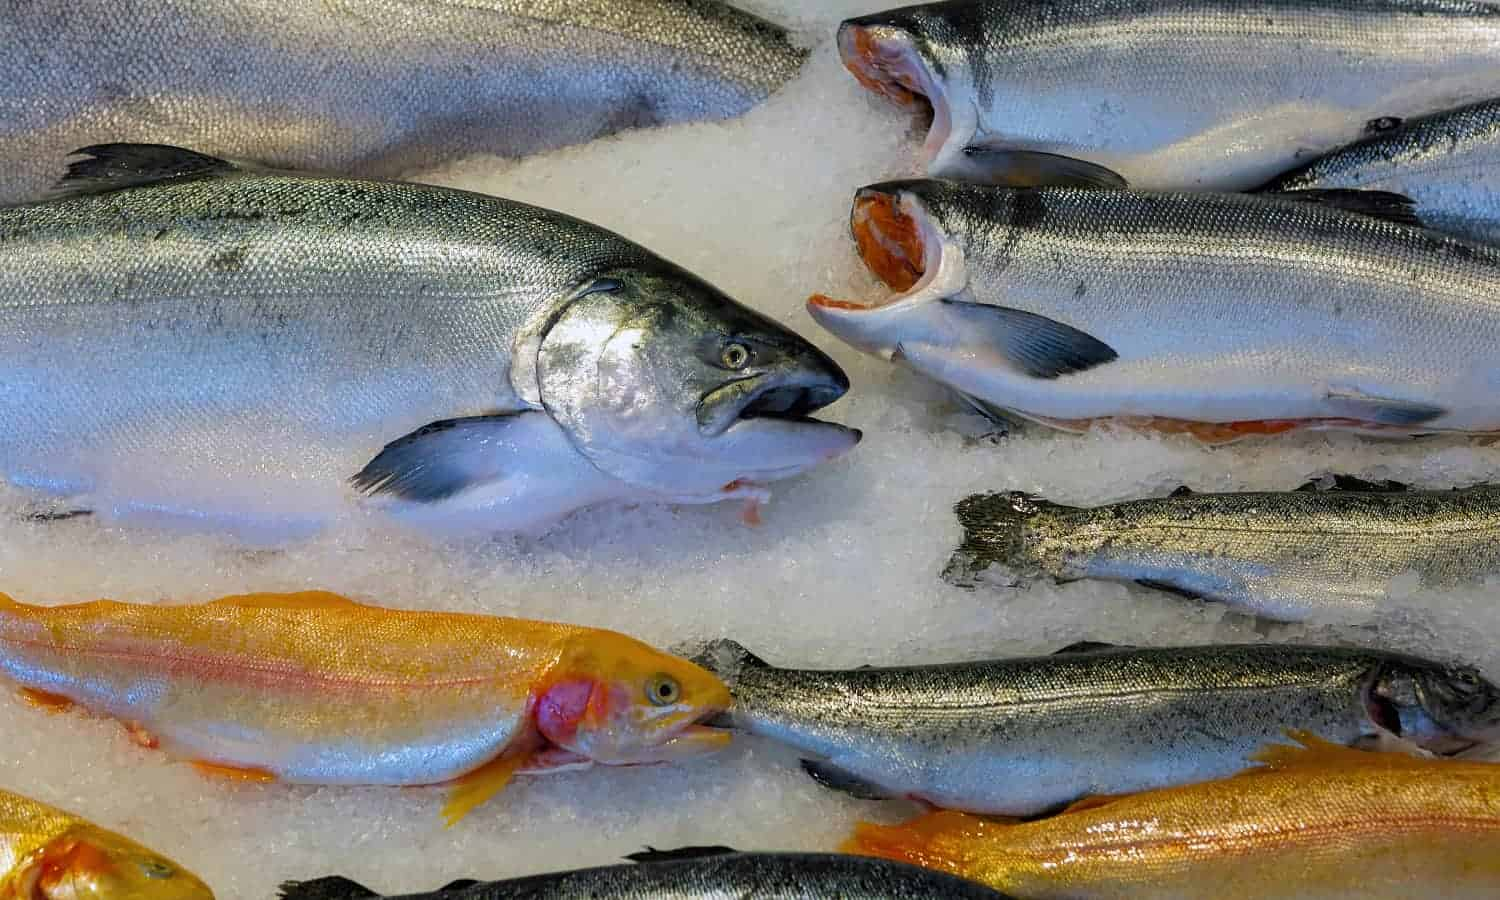 The Alaska seafood industry can meet the global demand for fish yet climate change and overfishing are threatening the Native people's food supply.